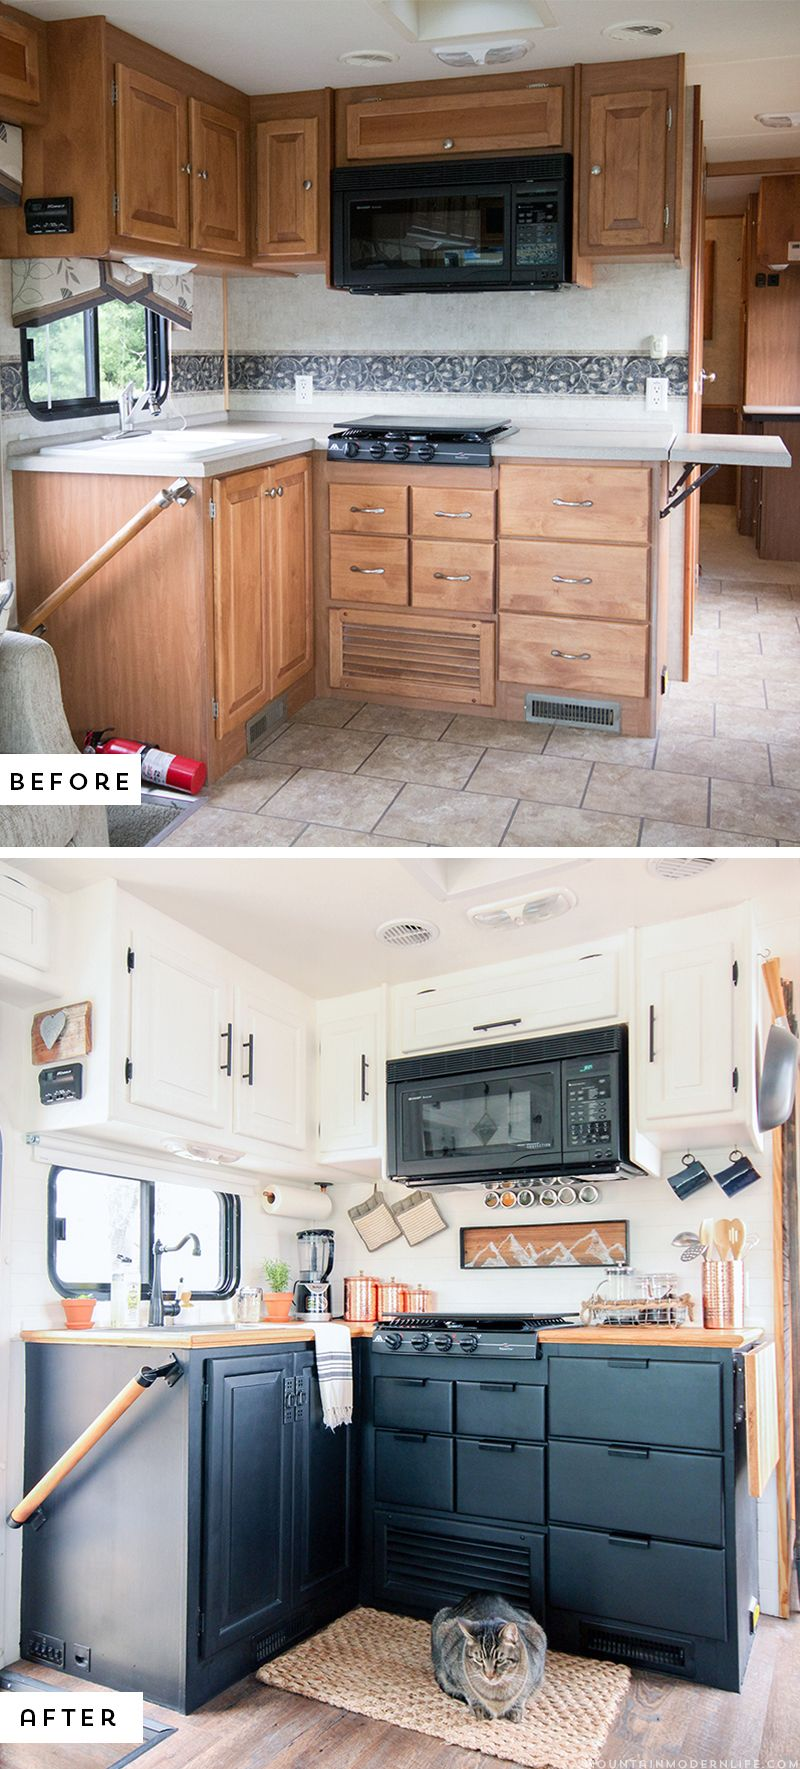 Superieur Could You Live In Less Than 300 Square Feet? See How This Outdated  Motorhome Was Completely Transformed Into A Rustic Modern RV!  MountainModernLife.com